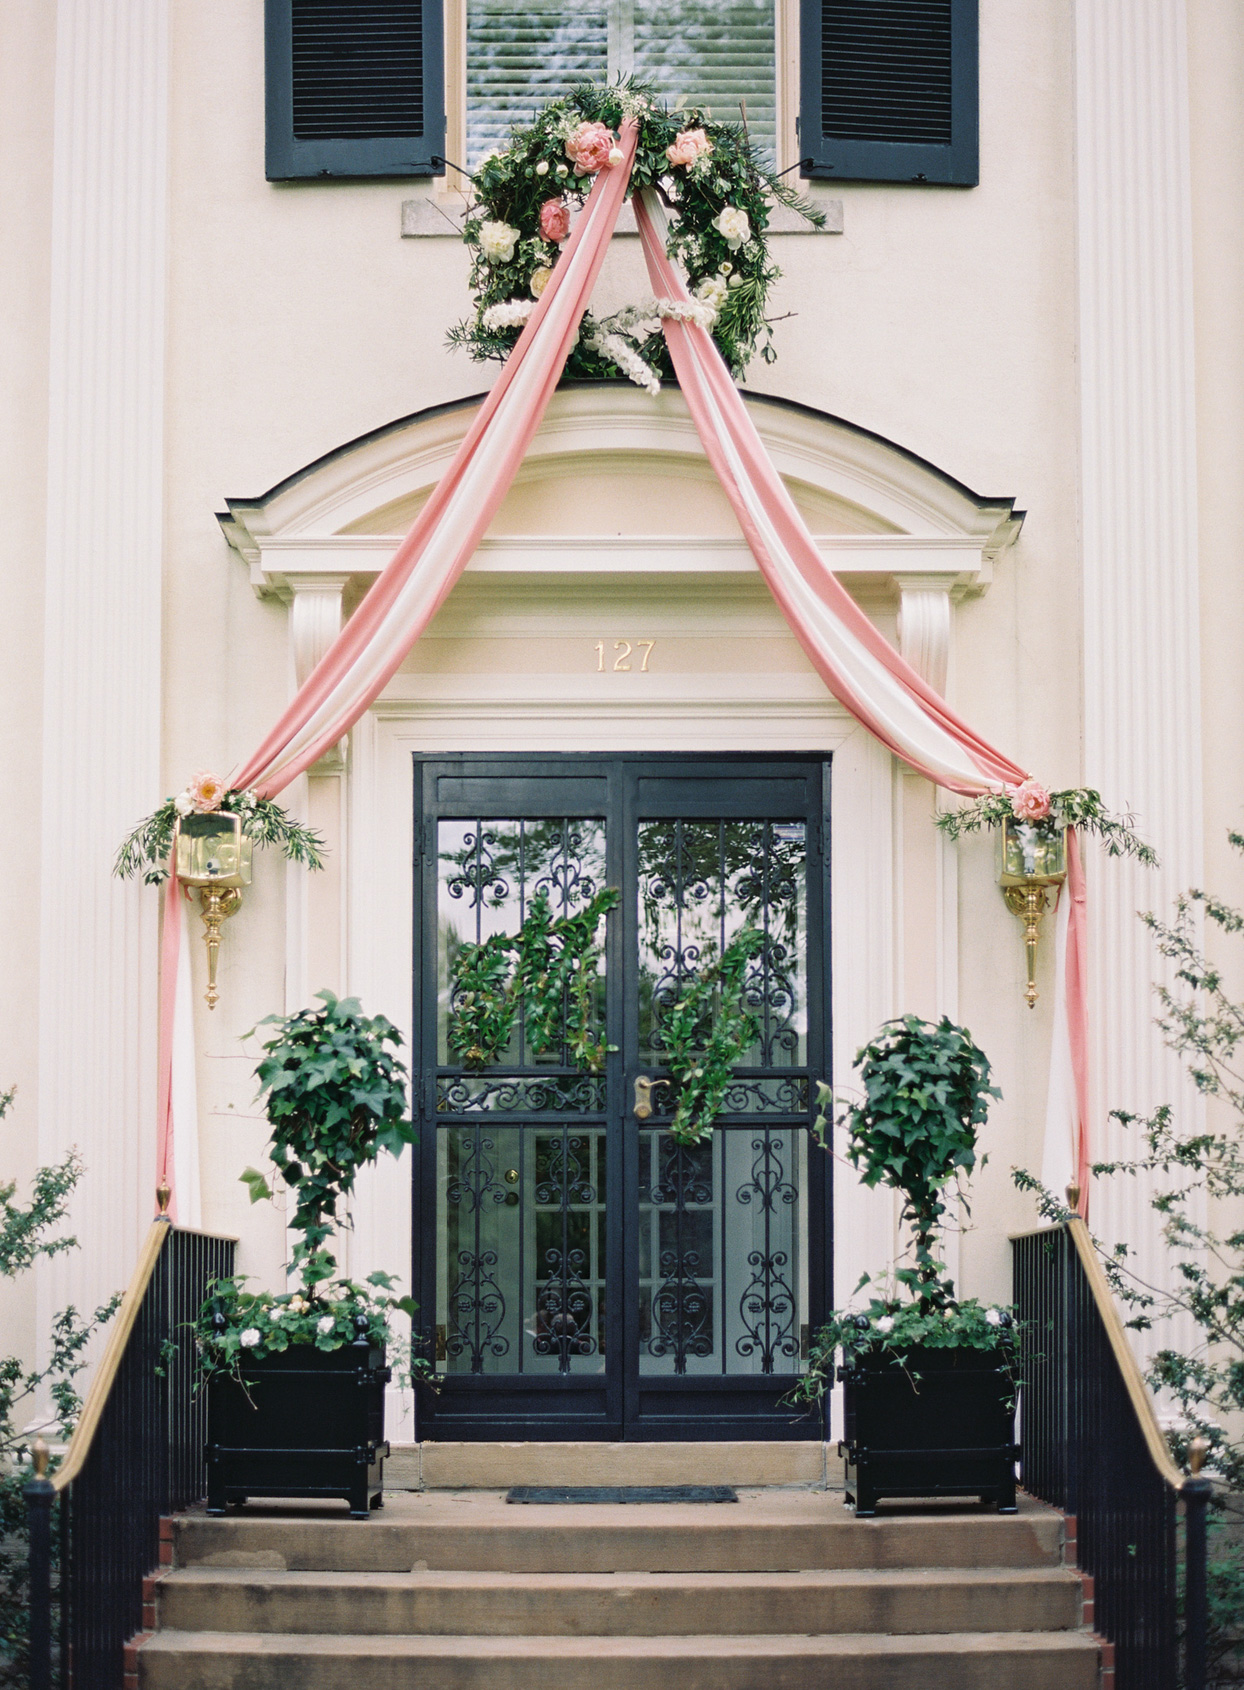 home front step decorating with wreath and drape for wedding